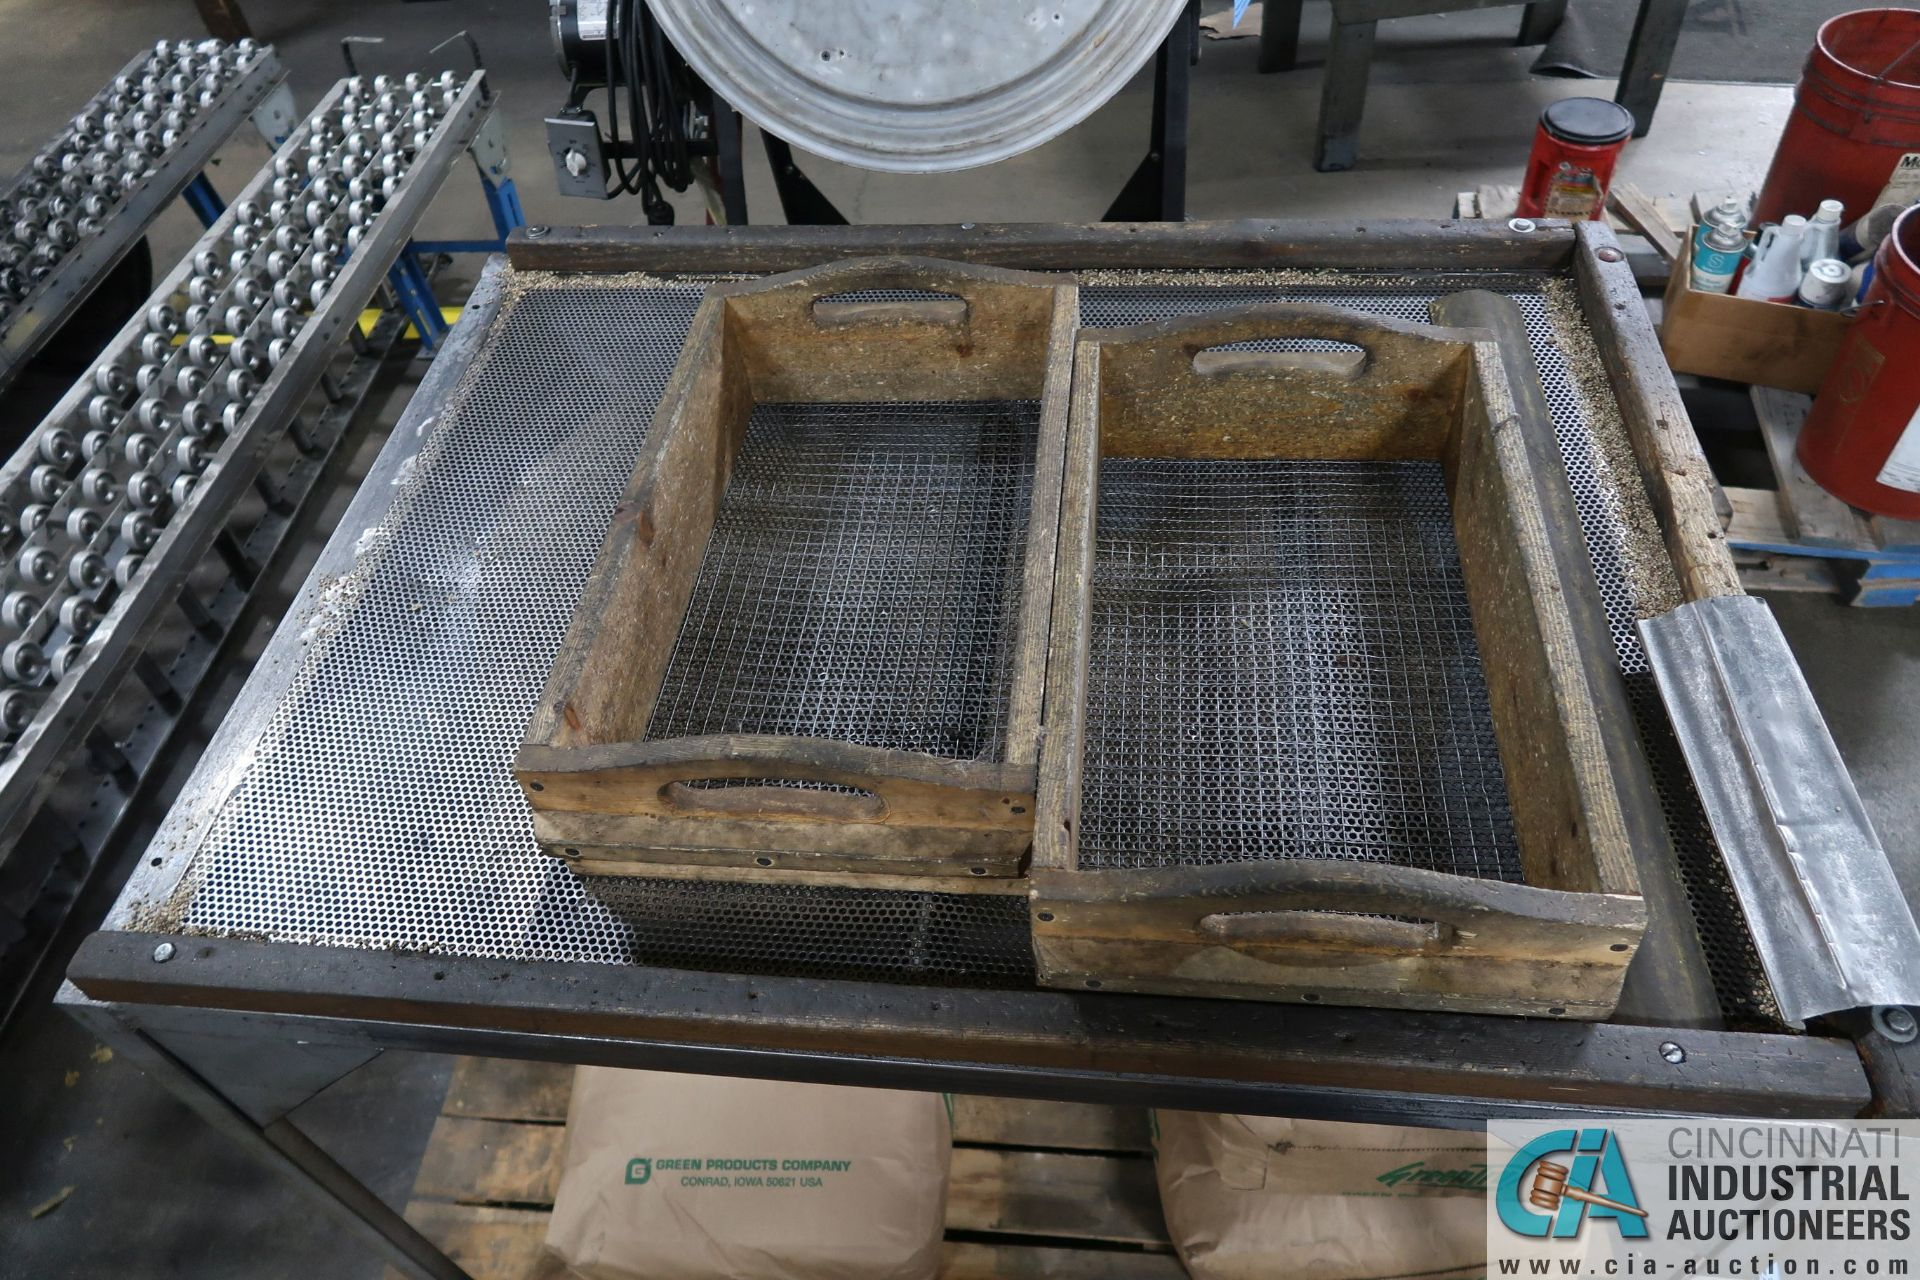 PORTABLE ELECTRIC CEMENT MIXERS CONVERTED TO CORN COB MEDIA FINISHING MACHINE WITH SIFTING TABLE AND - Image 5 of 6